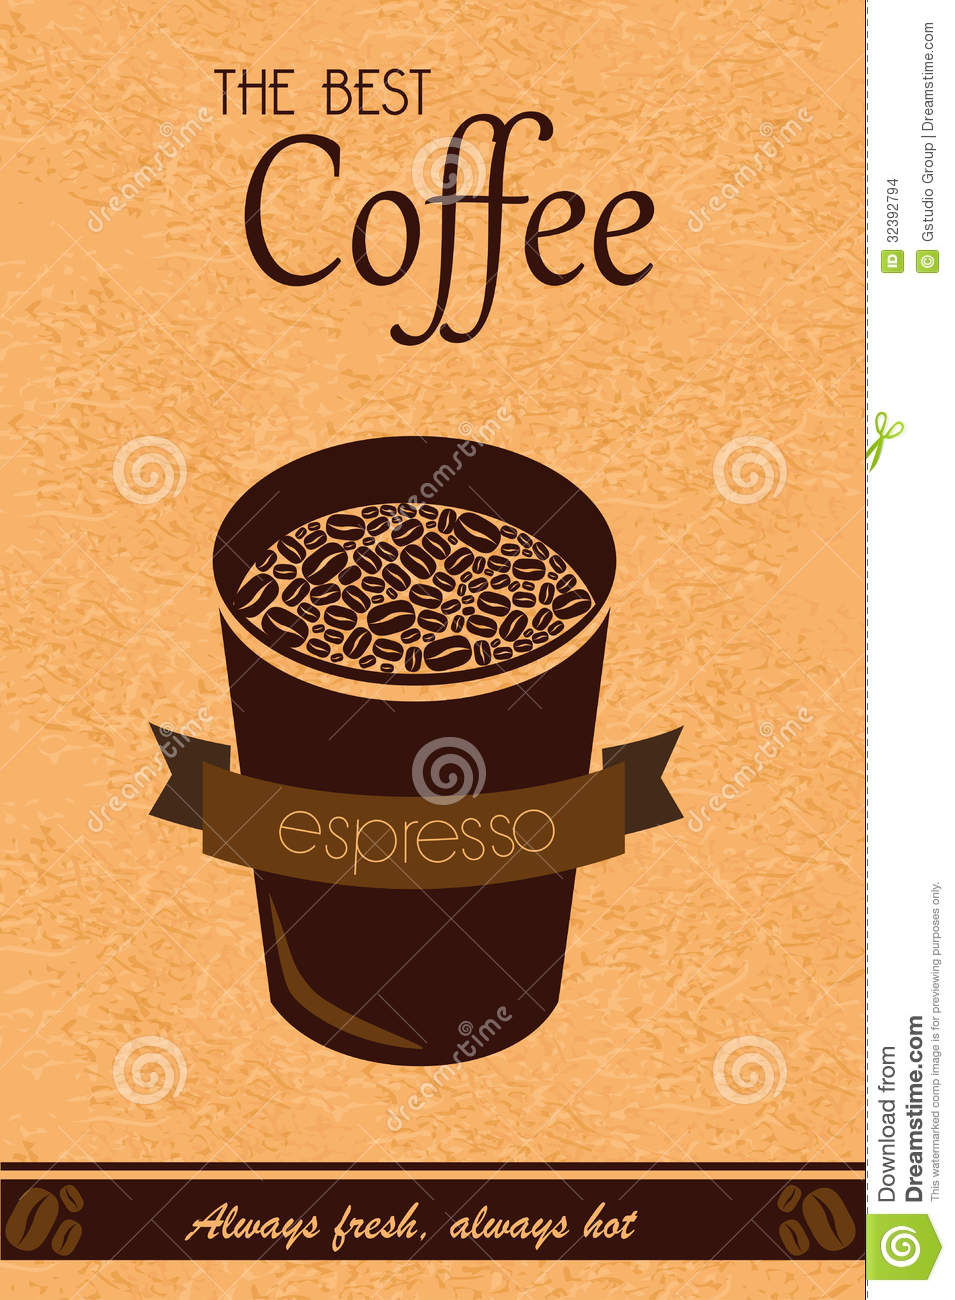 coffee is a students best friend This is a list of characters for the comedy-drama television series gilmore girls   later, lorelai and her best friend sookie st james find an old run-down inn   rory shares her mother's taste in junk food, coffee, movies, music, and much  more  she also reluctantly runs for student government with paris and wins,  and.